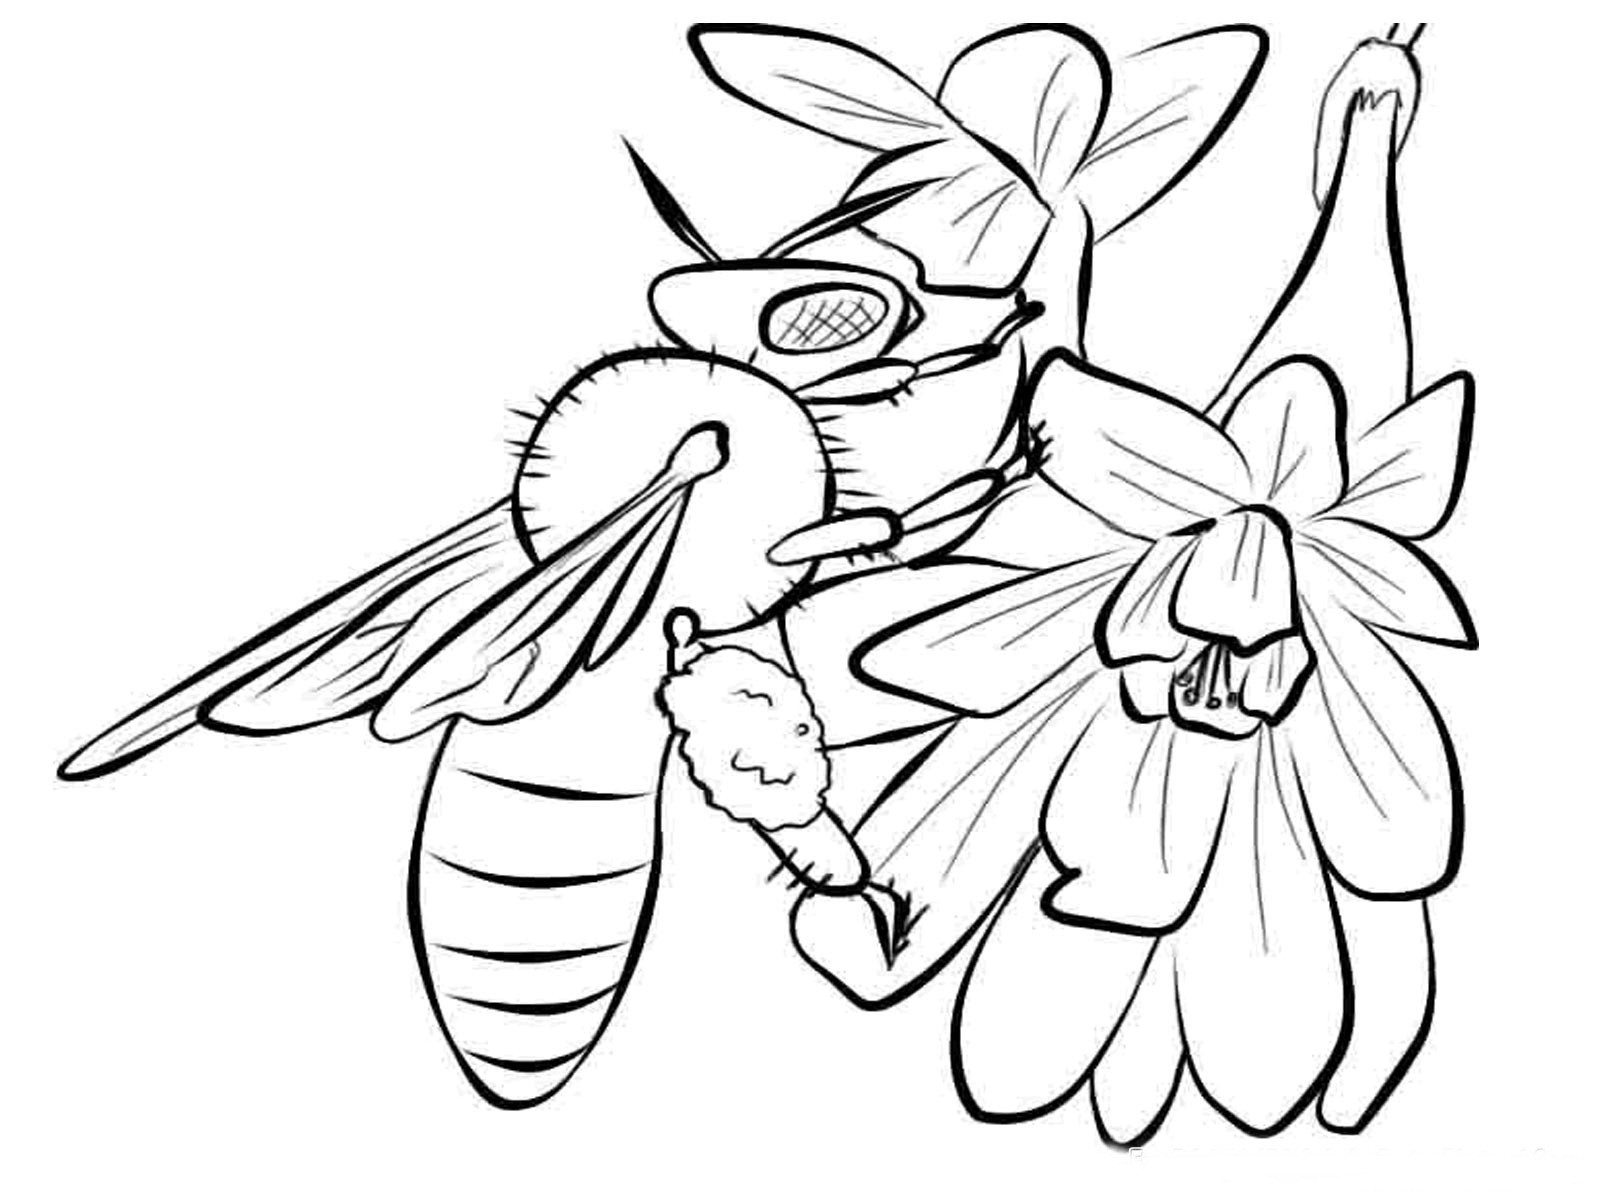 Best ideas about Honey Bee Coloring Pages For Kids . Save or Pin Bees Coloring Pages Realistic Now.